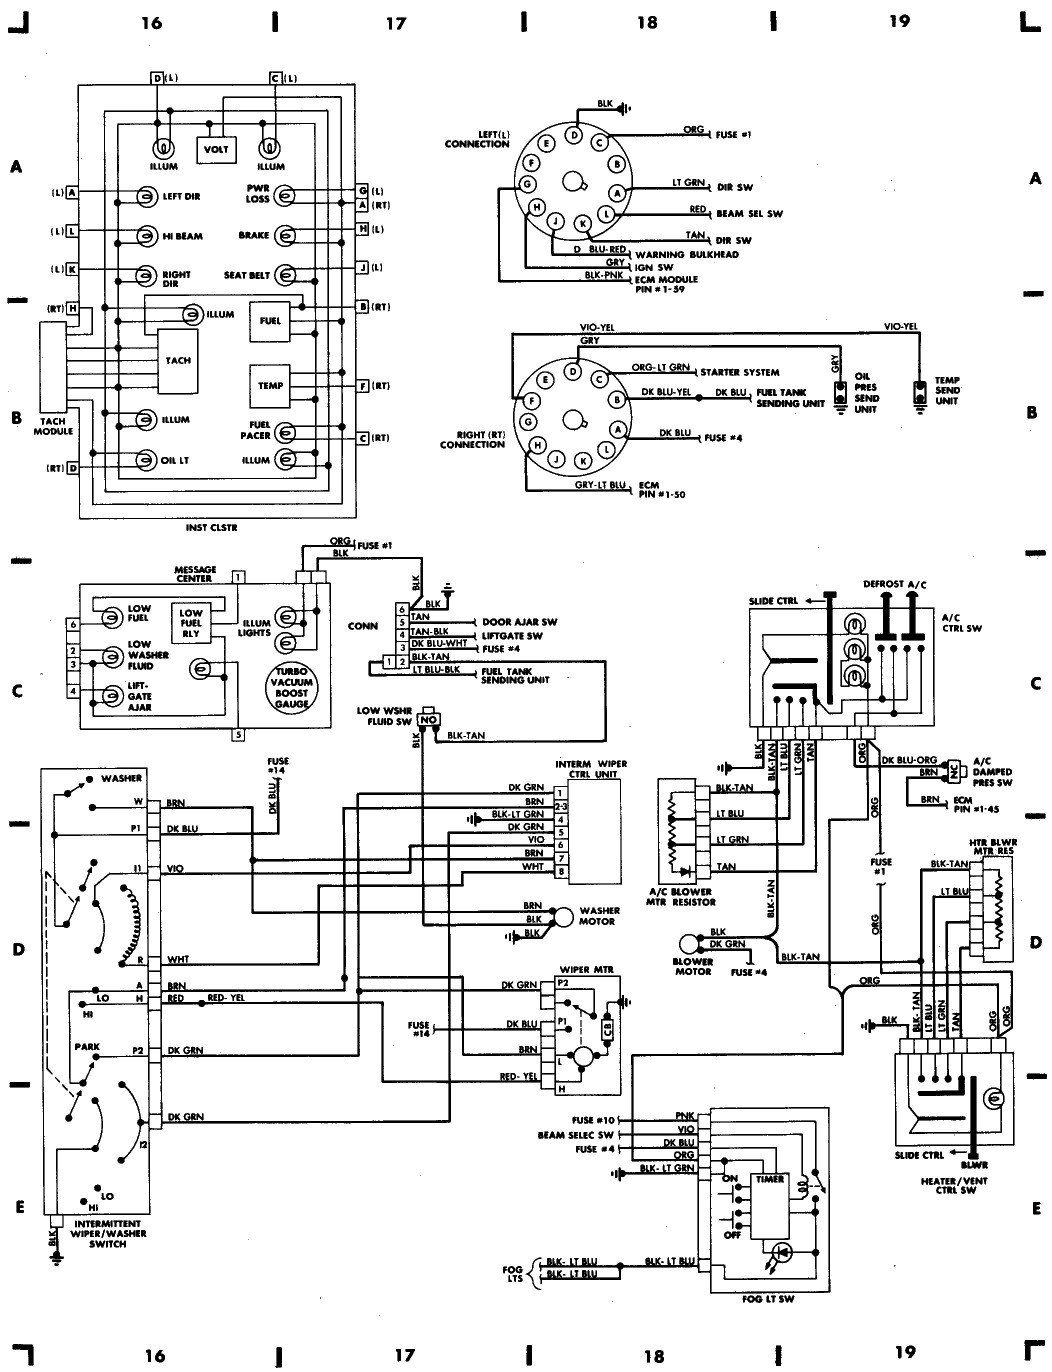 mopar 1988 wiring diagram wiring diagram and schematic 88 dodge ram 50 signal lights inop on my 2 0 wiring diagram